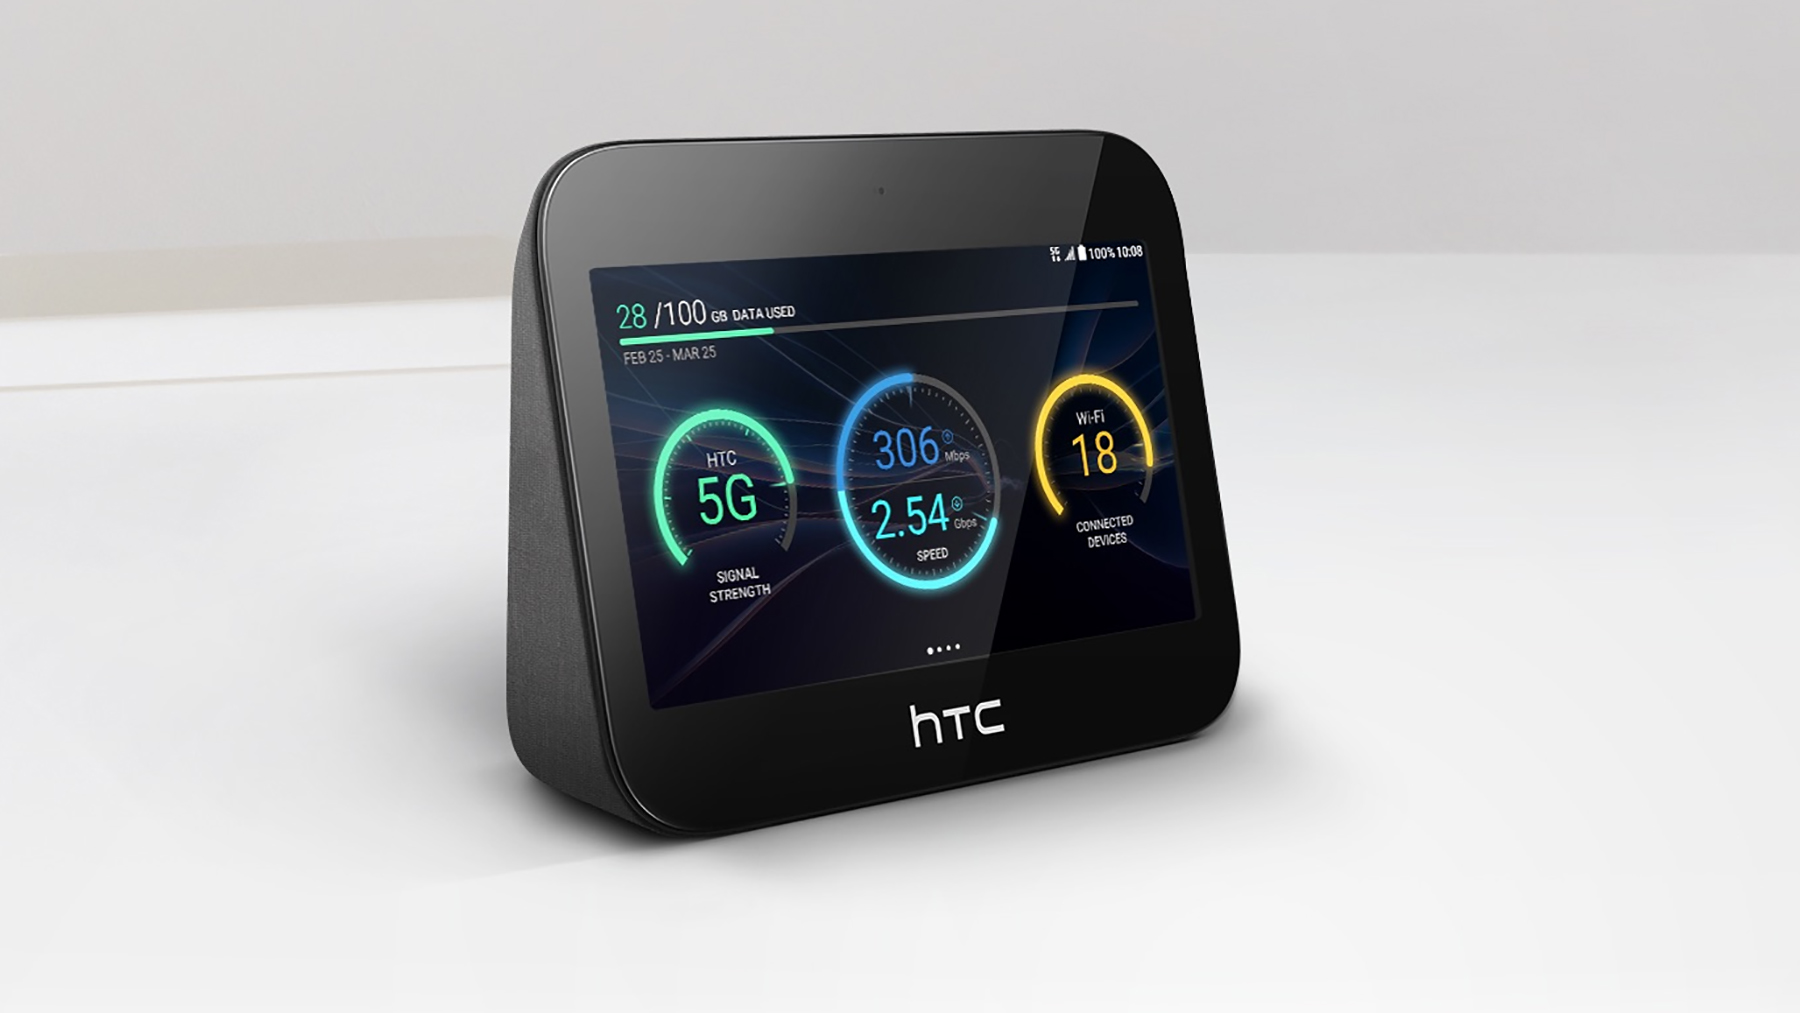 The HTC 5G Hub brings 5G speeds into your home – or out on the road